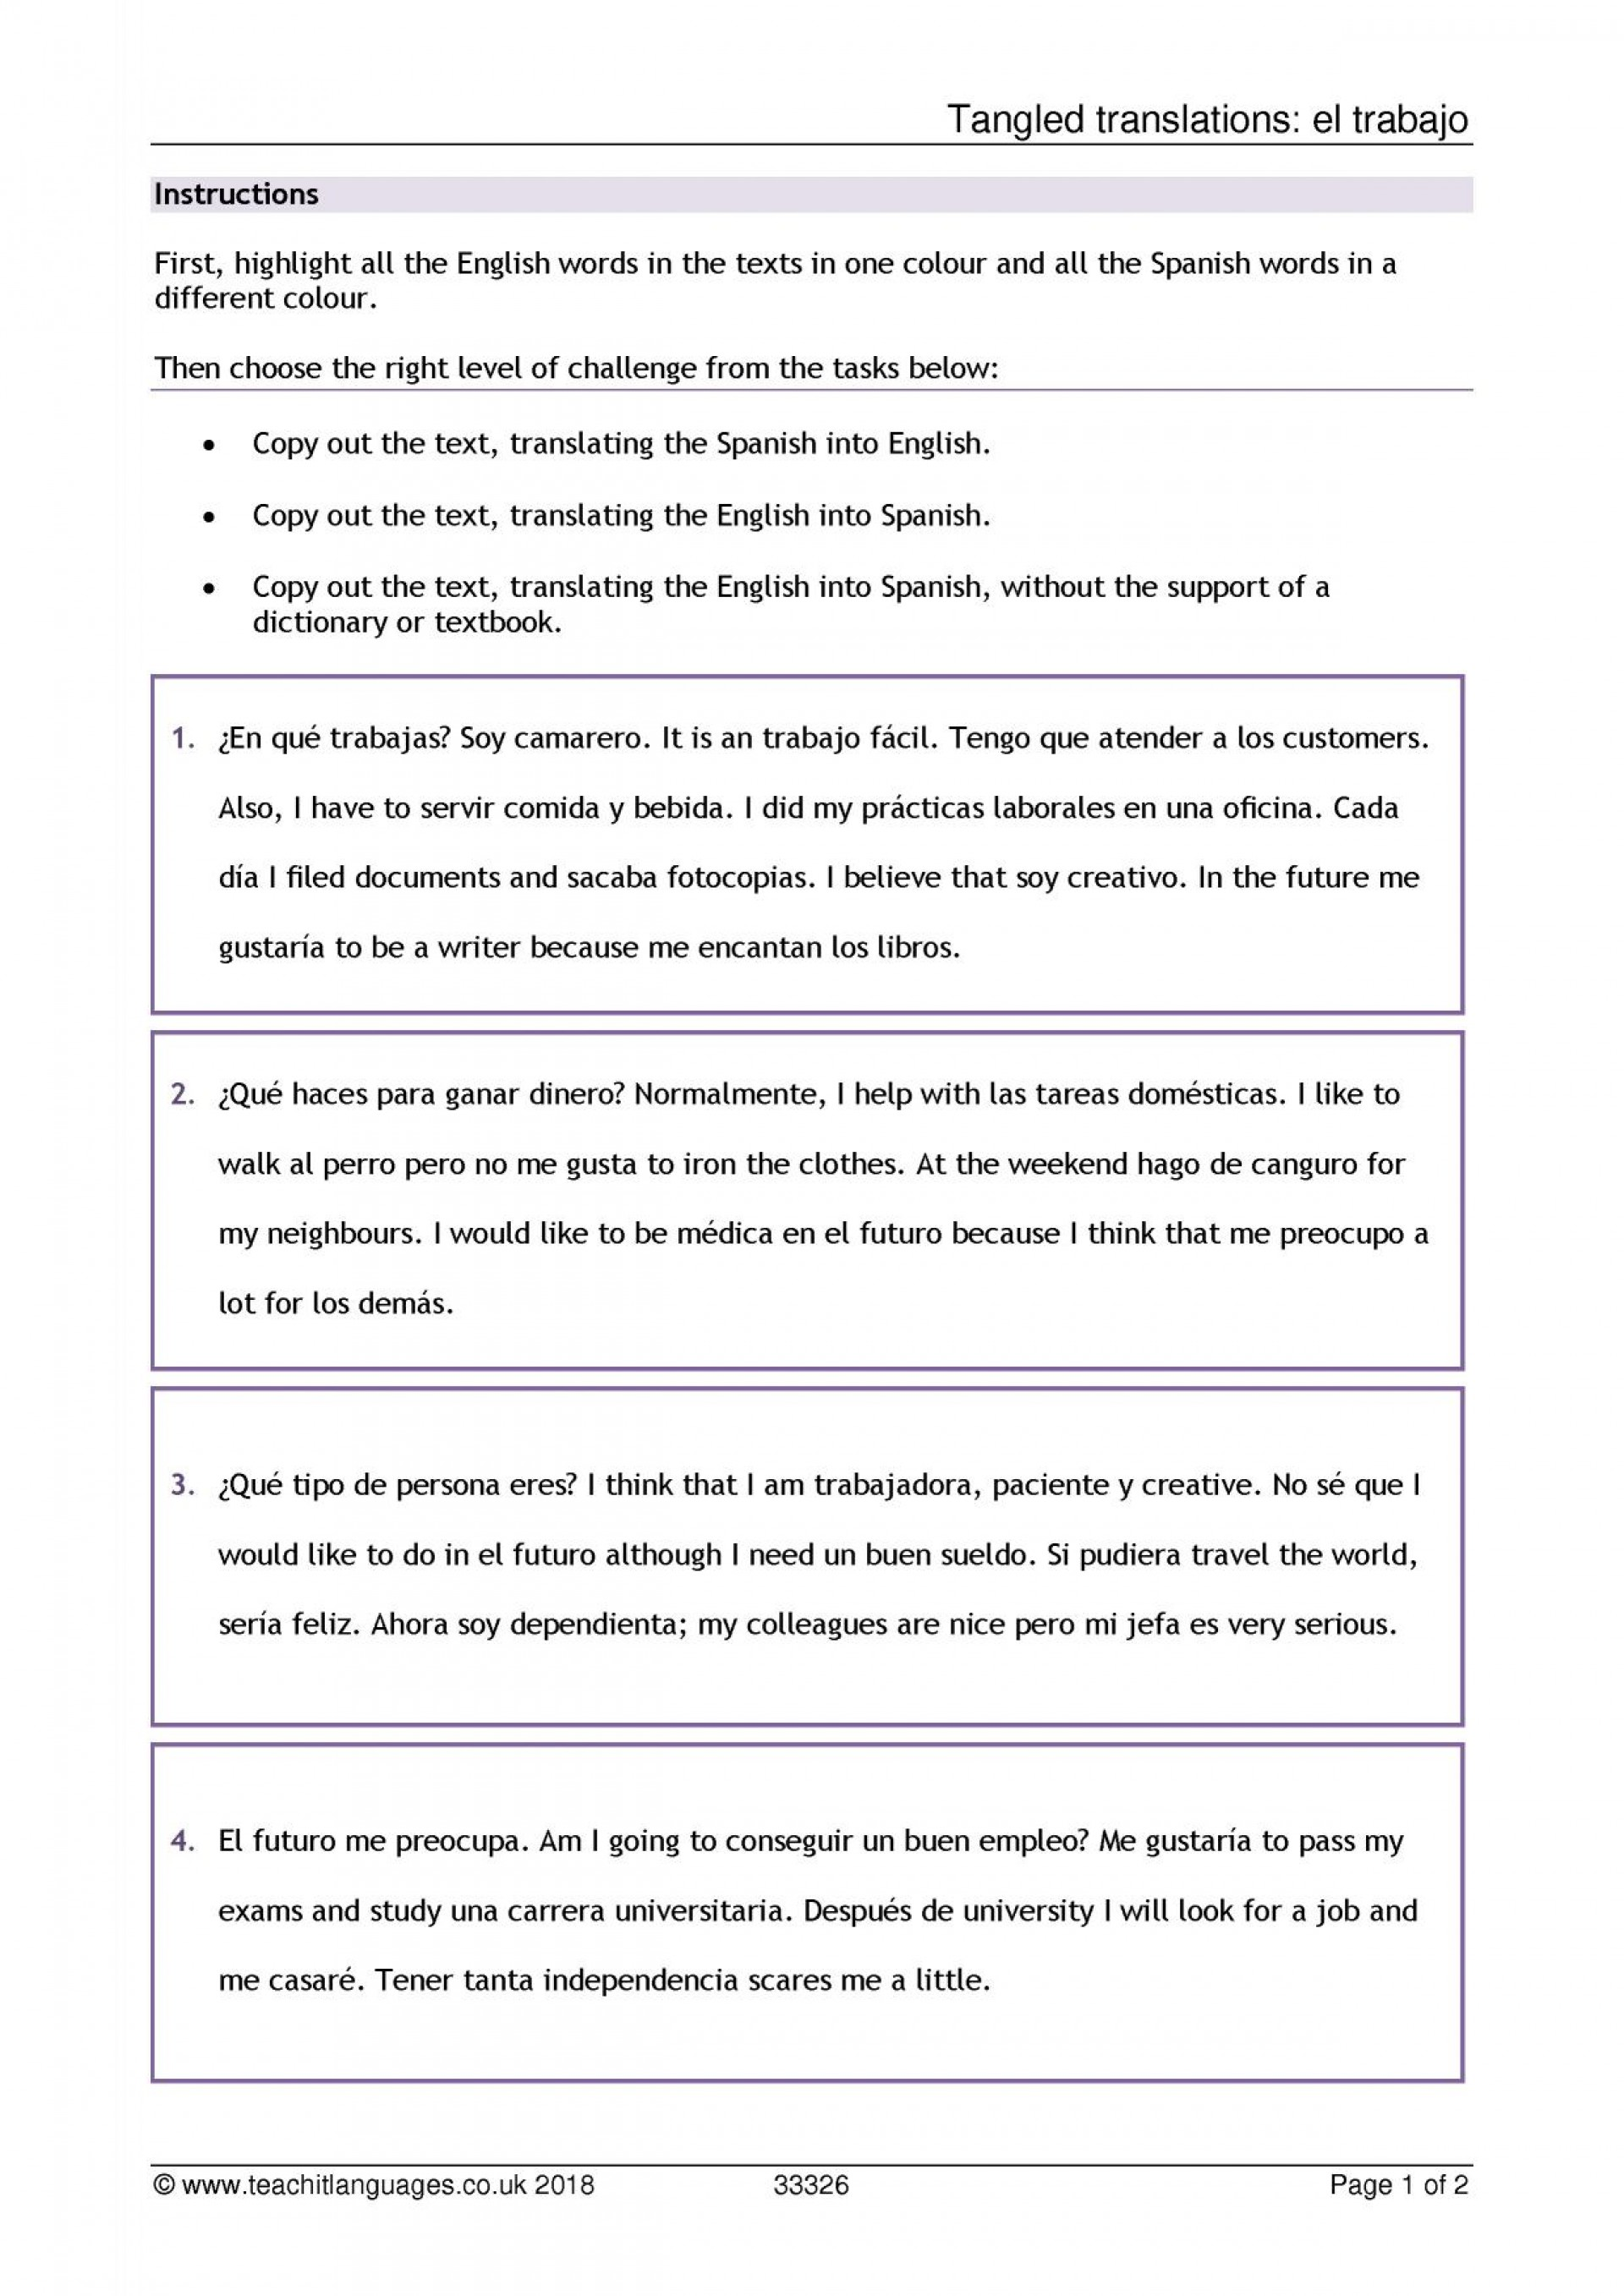 008 X78302 Php Pagespeed Ic 0xojul 6nq Essay Example Translate My Into Remarkable Spanish 1920